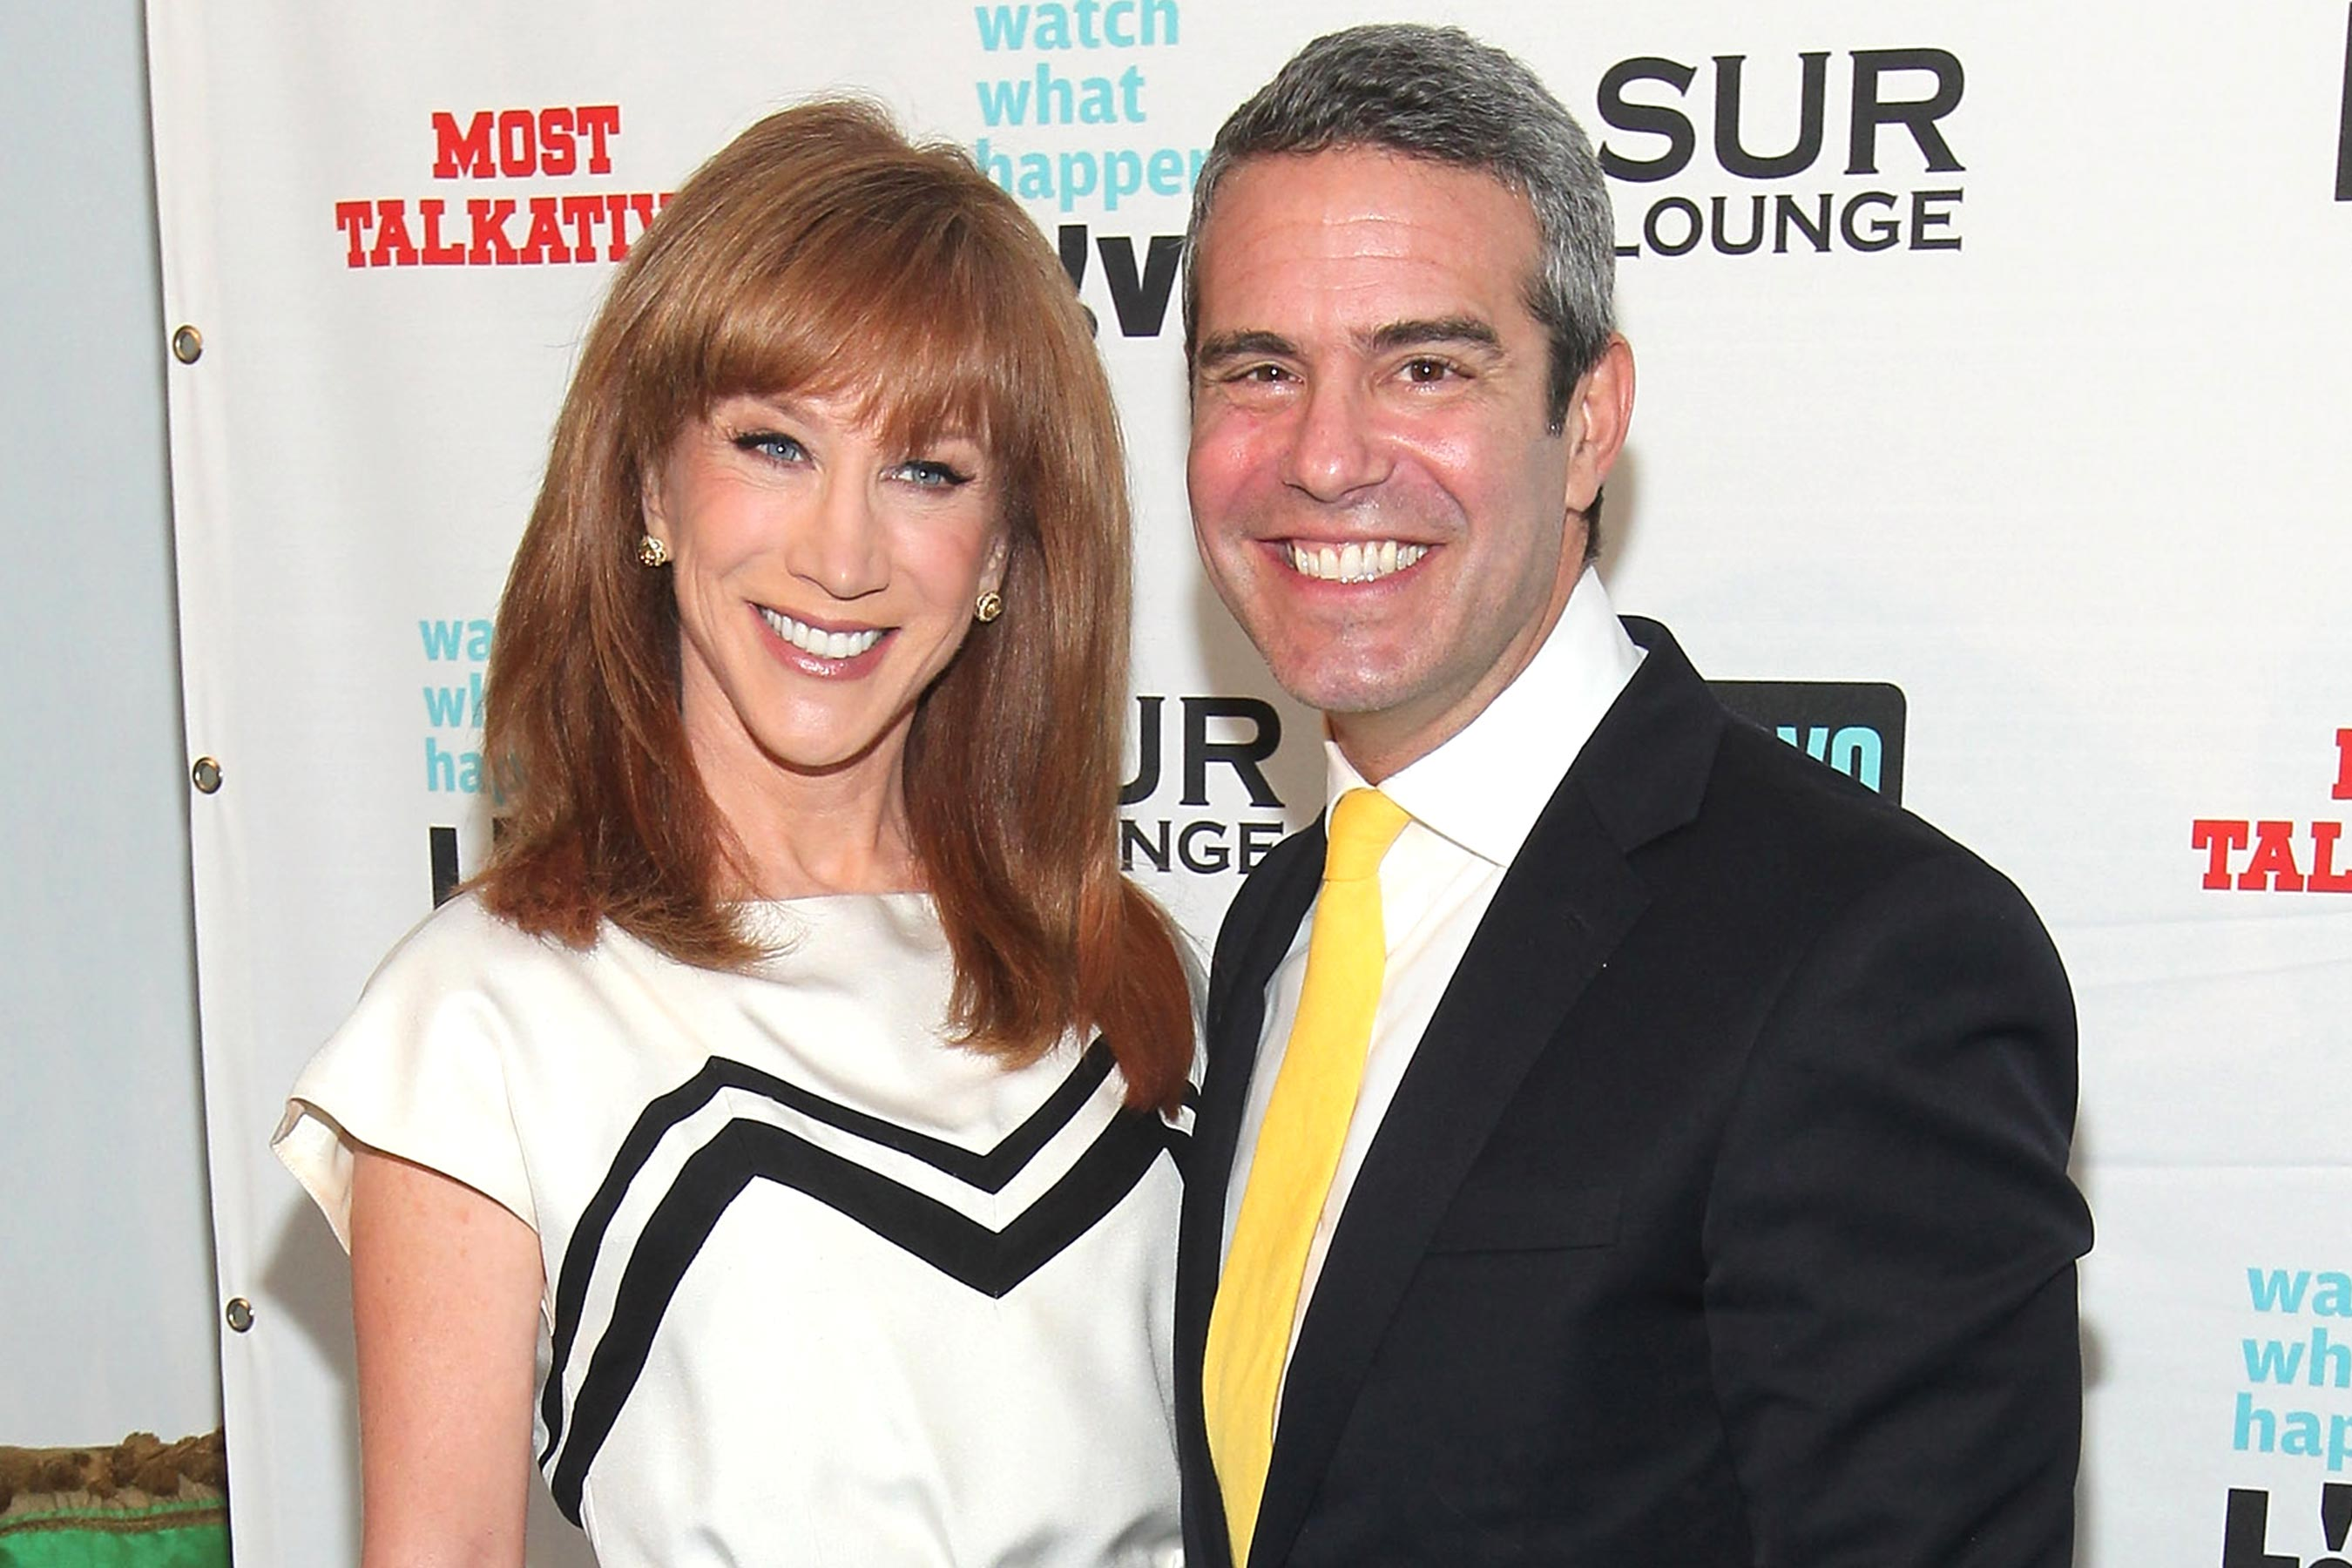 Andy Cohen says he understands why Kathy Griffin hates him